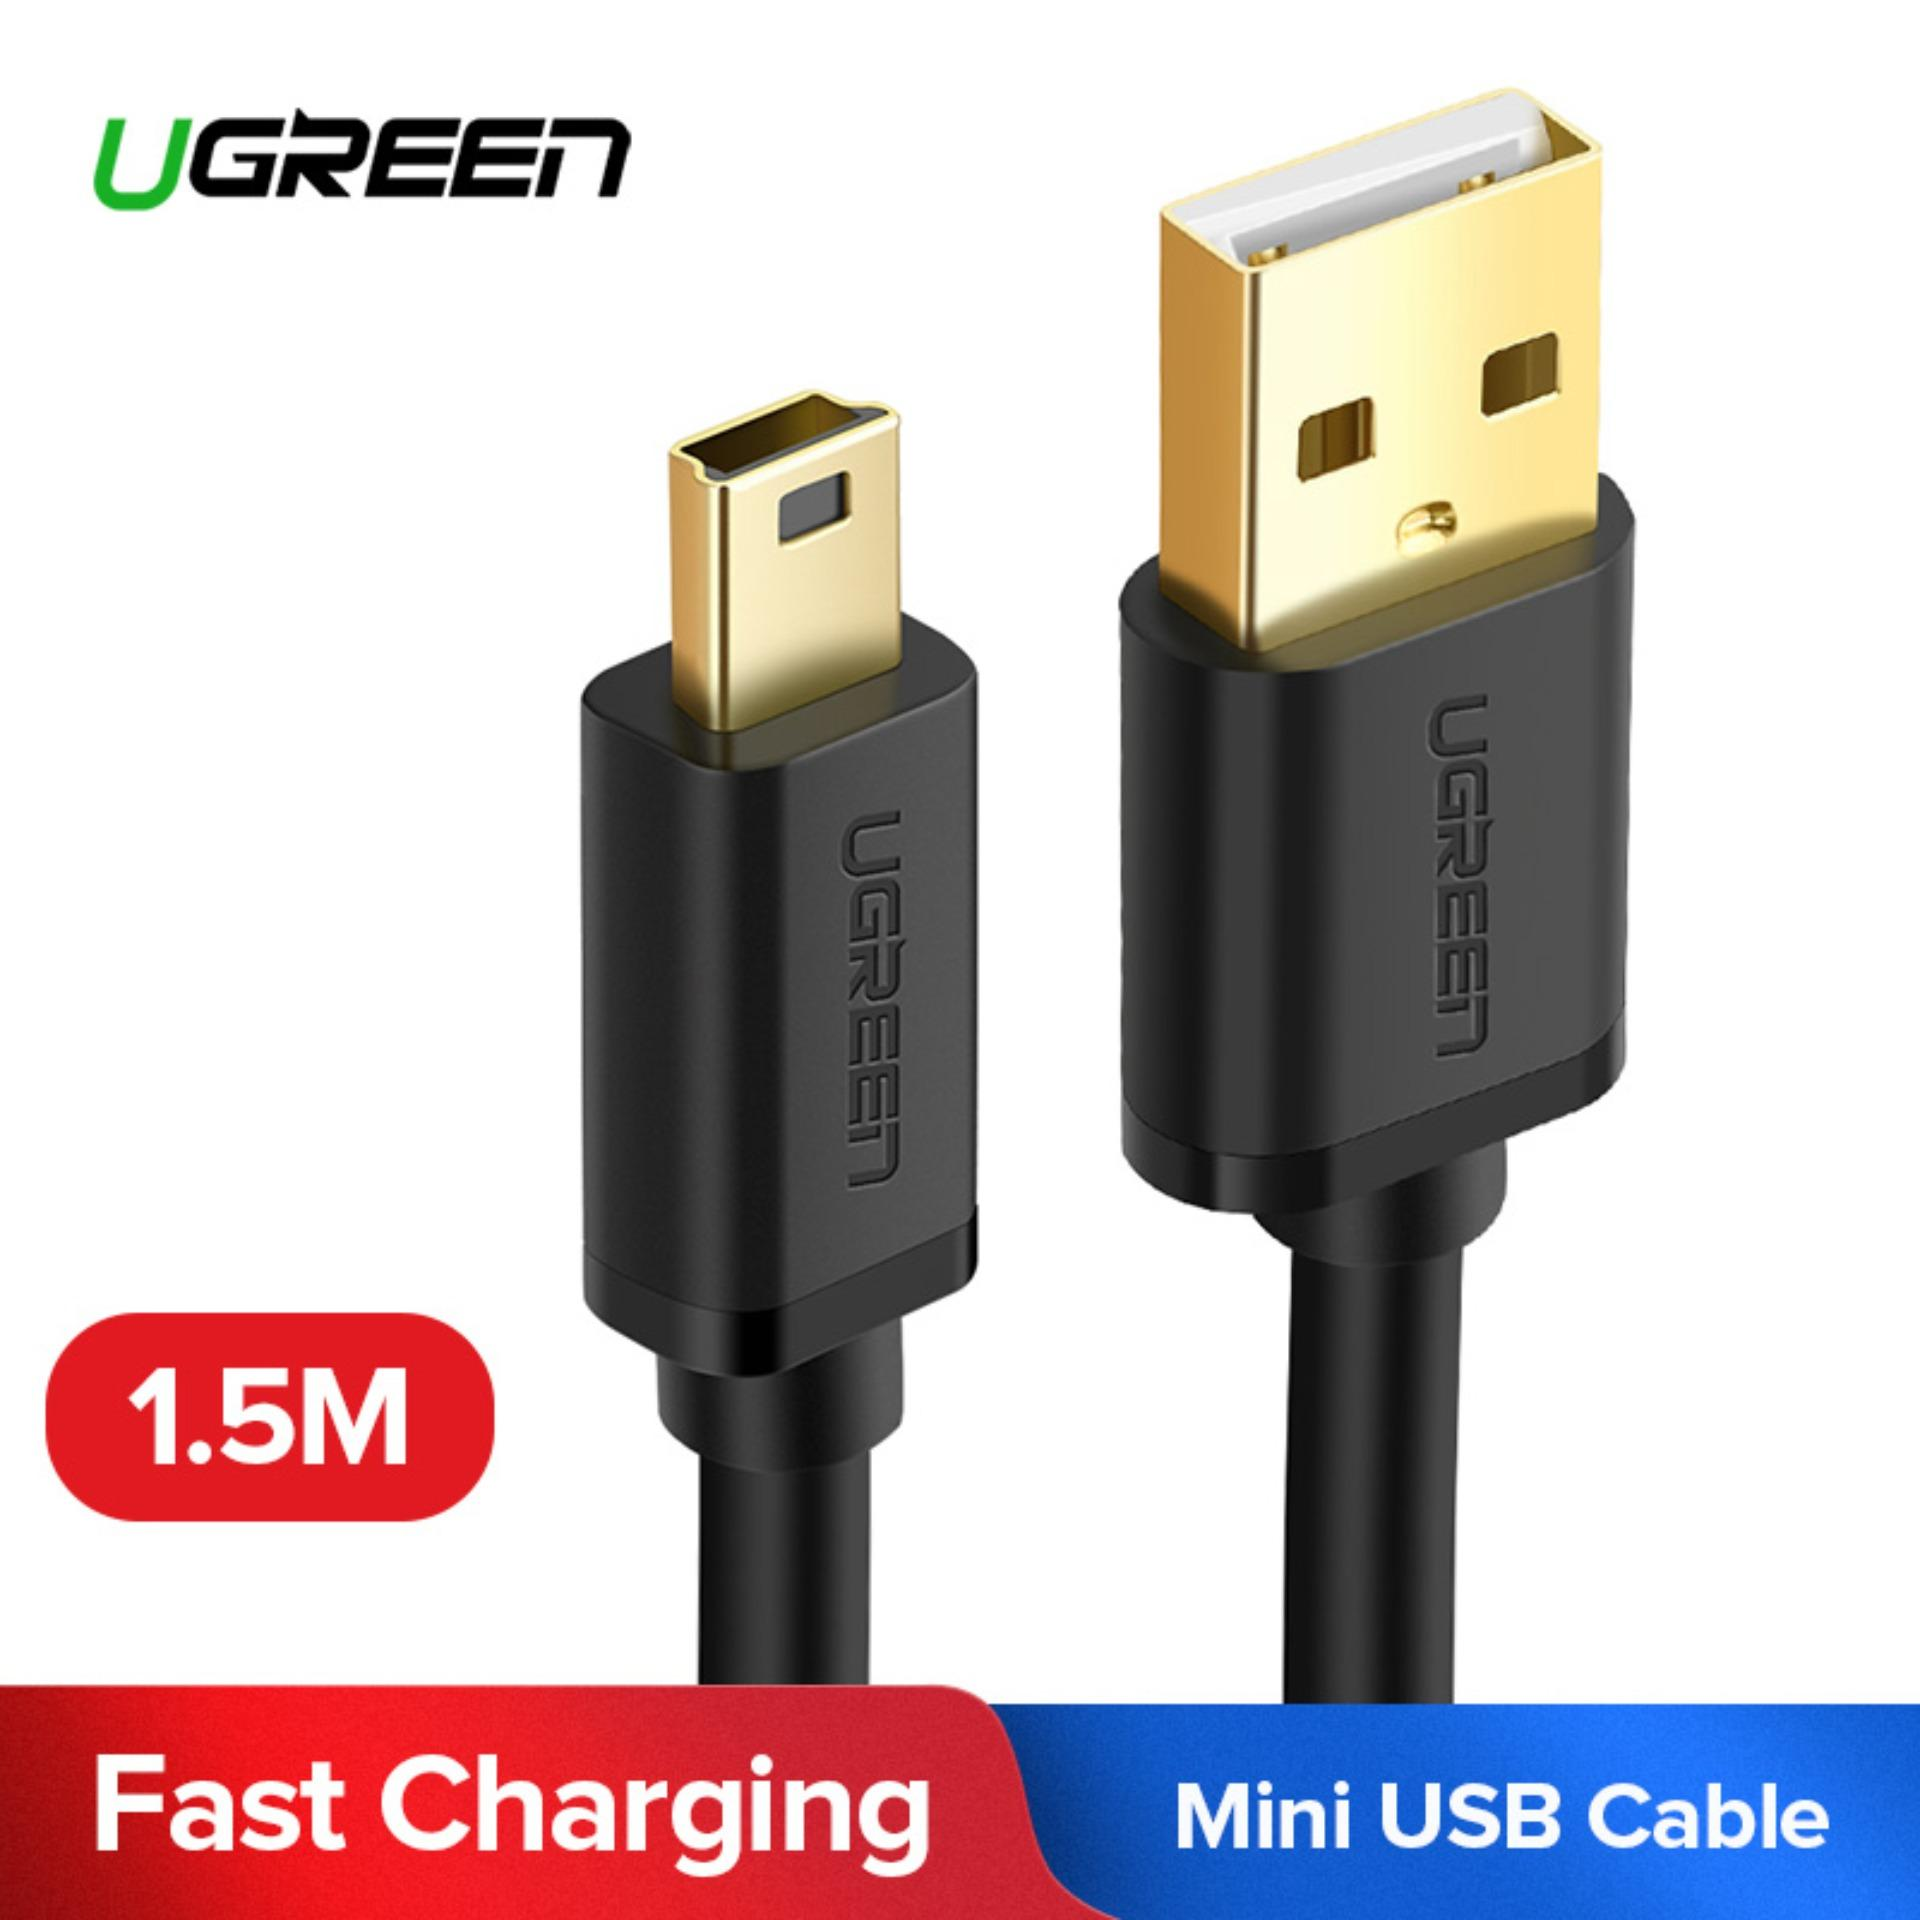 UGREEN USB 2.0 A Male to 5-Pin Mini B Fast Data Charger Cable for MP3 MP4 Players Tablets GPS Digital Camera HDD (1.5m) - Intl